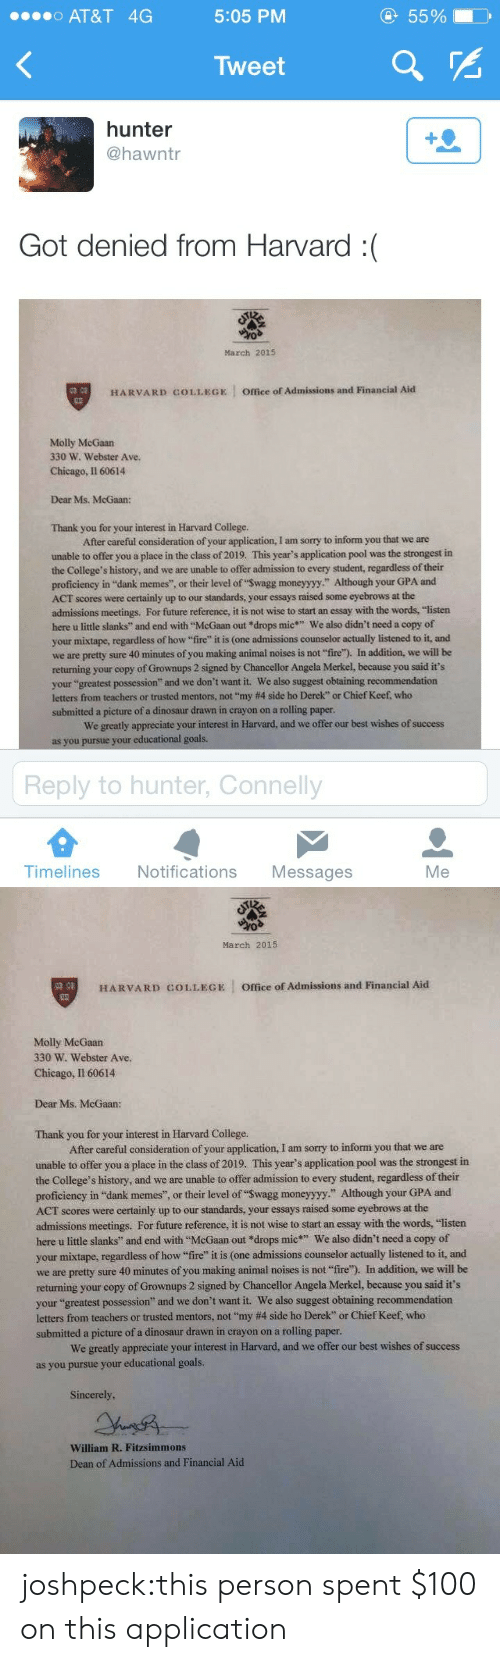 """Counselors: o AT&T 4G  5:05 PM  55%  Tweet  hunter  @hawntr  Got denied from Harvard :(  March 2015  HARVARD COLLEGE  Office of Admissions and Financial Aid  Molly McGaan  330 W. Webster Ave.  Chicago, Il 60614  Dear Ms. McGaan:  Thank you for your interest in Harvard College.  After careful consideration of your application, I am sorry to inform you that we are  unable to offer you a place in the class of 2019. This year's application pool was the strongest in  the College's history, and we are unable to offer admission to every student, regardless of their  proficiency in """"dank memes"""", or their level of """"Swagg moneyyyy."""" Although your GPA and  ACT scores were certainly up to our standards, your essays raised some eyebrows at the  admissions meetings. For future reference, it is not wise to start an essay with the words, """"listen  here u little slanks"""" and end with McGaan out *drops mic We also didn't need a copy of  your mixtape, regardless of how fire"""" it is (one admissions counselor actually listened to it, and  we are pretty sure 40 minutes of you making animal noises is not """"fire). In addition, we will be  returning your copy of Grownups 2 signed by Chancellor Angela Merkel, because you said it's  your """"greatest possess  letters from teachers or trusted mentors, not """"my #4 side ho Derek"""" or Chief Keef who  submitted a picture of a dinosaur drawn in crayon on a rolling paper  ion"""" and we don't want it. We also suggest obtaining recommendation  We greatly appreciate your interest in Harvard, and we offer our best wishes of success  as you  r educational goals.  Reply to hunter, Connelly  Timelines Notifications Messages  Me   March 2015  缚,  HARVARD COLLEGE Office of Admissions and Financial Aid  Molly McGaan  330 W. Webster Ave  Chicago, I1 60614  Dear Ms. McGaan:  Thank you for your interest in Harvard College  After careful consideration of your application, I am sorry to inform you that we are  unable to offer you a place in the class of 2019. This year's app"""